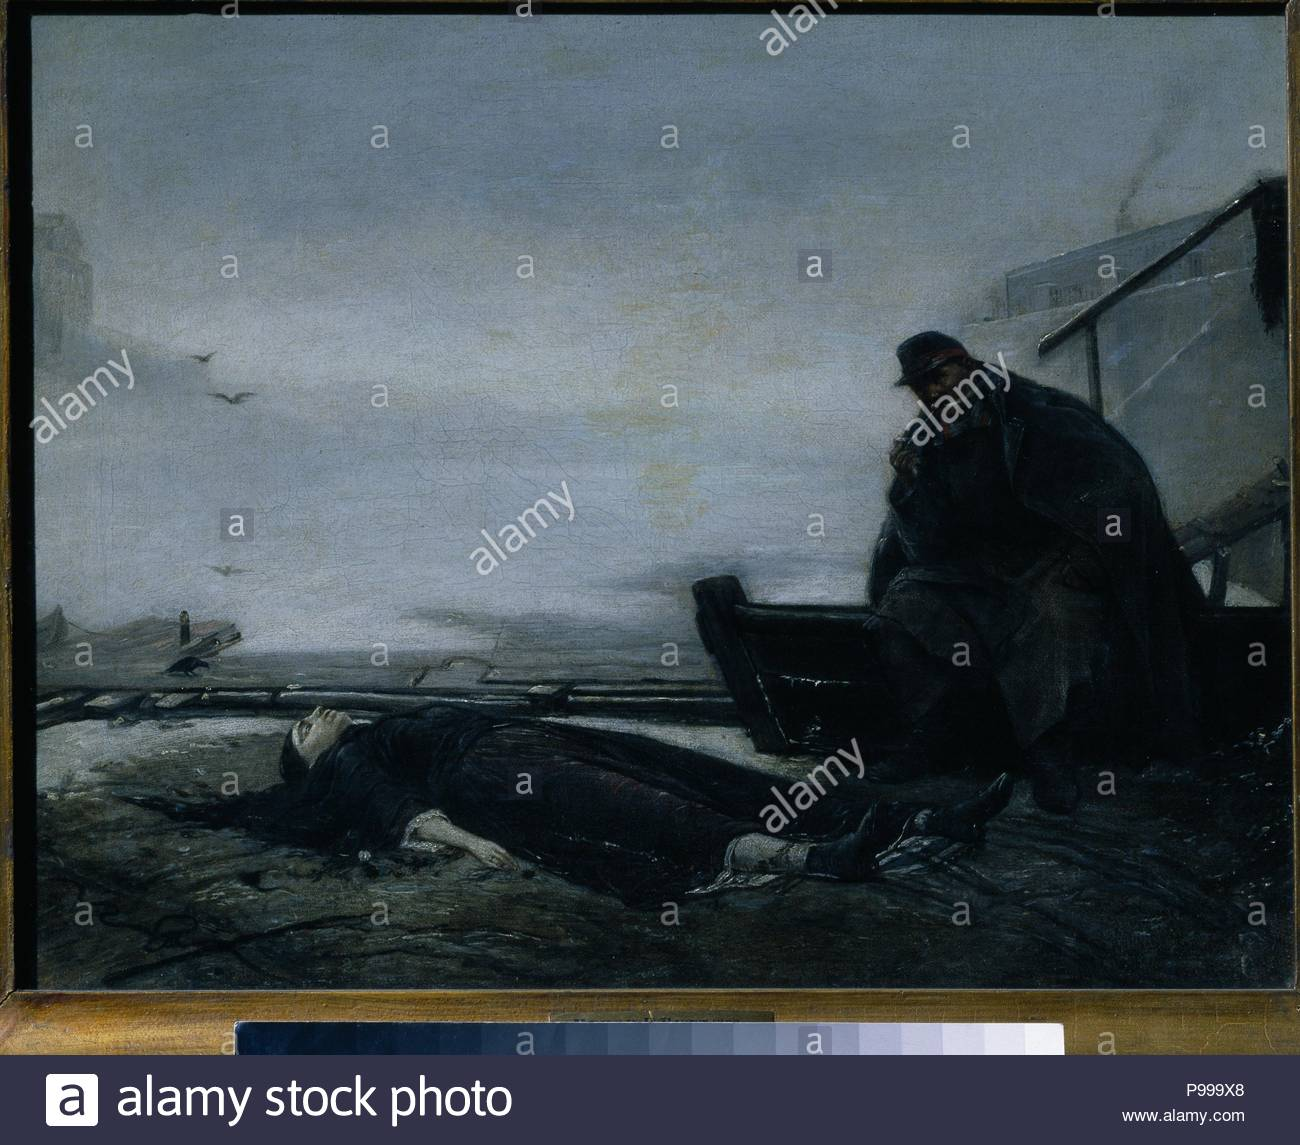 The Drowned. Museum: State Tretyakov Gallery, Moscow. - Stock Image